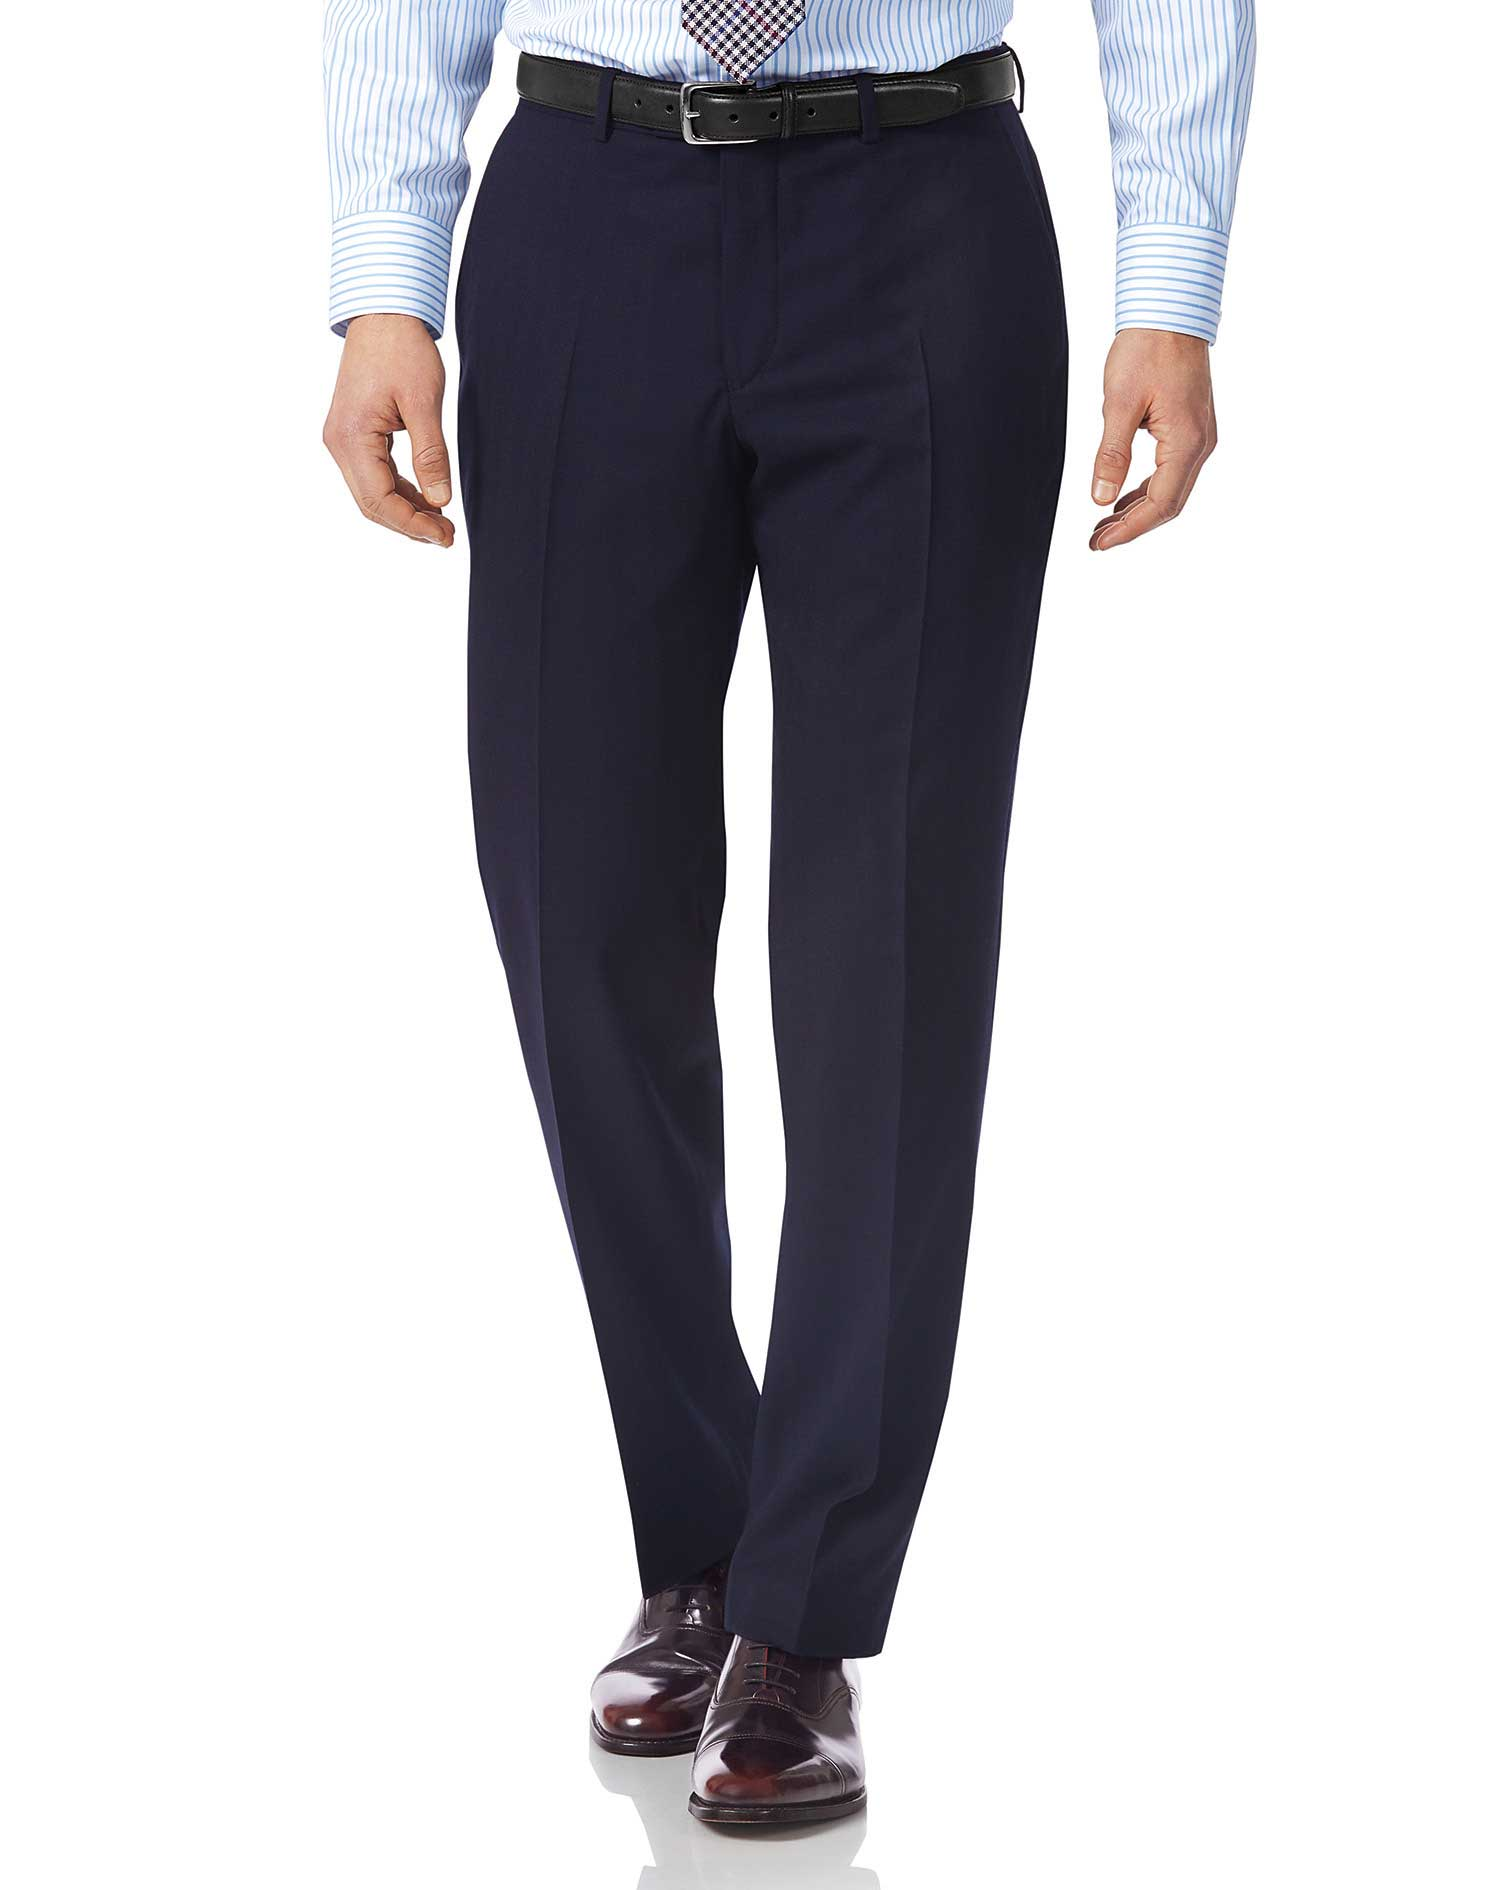 Navy classic fit British luxury suit trousers